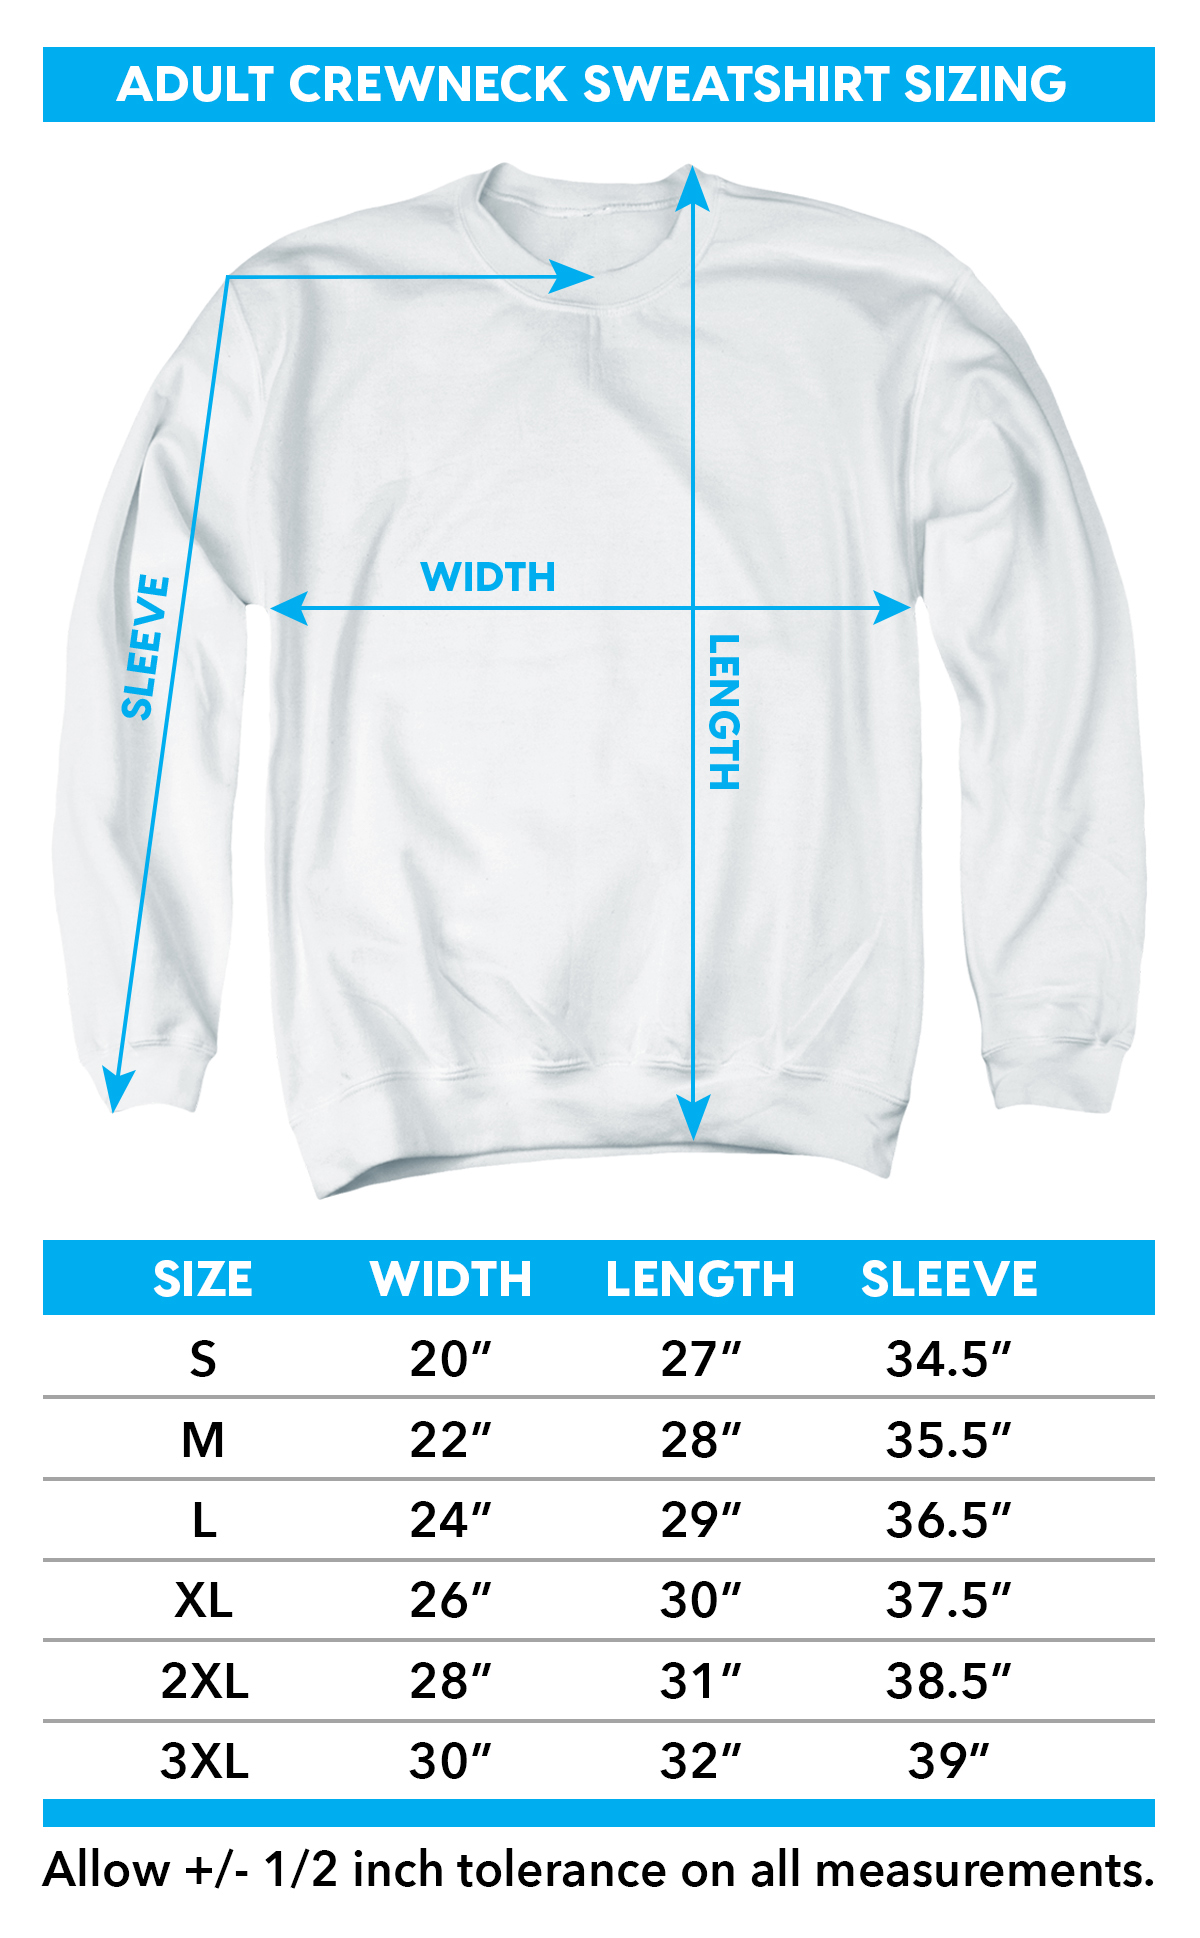 Sizing chart for the Metalocalypse Facebones crewneck sweatshirt